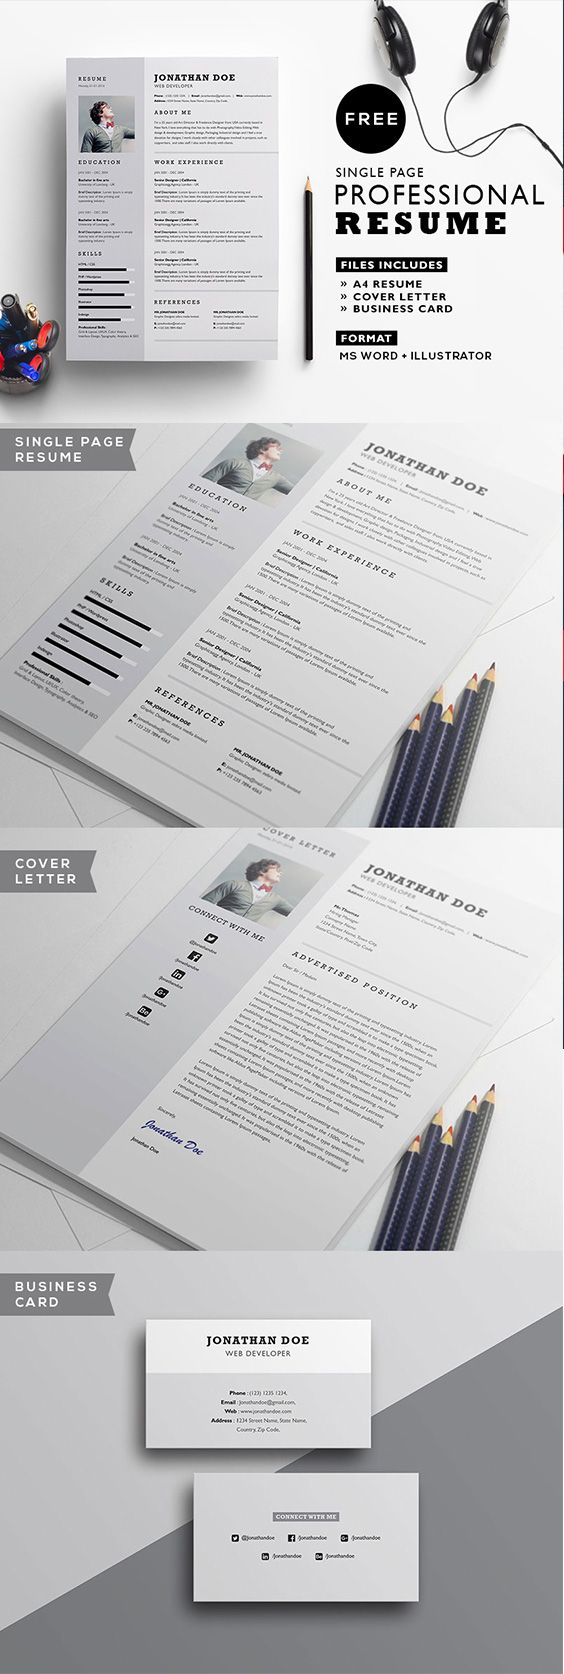 tagsResume Template 781 Free Samples Examples amp